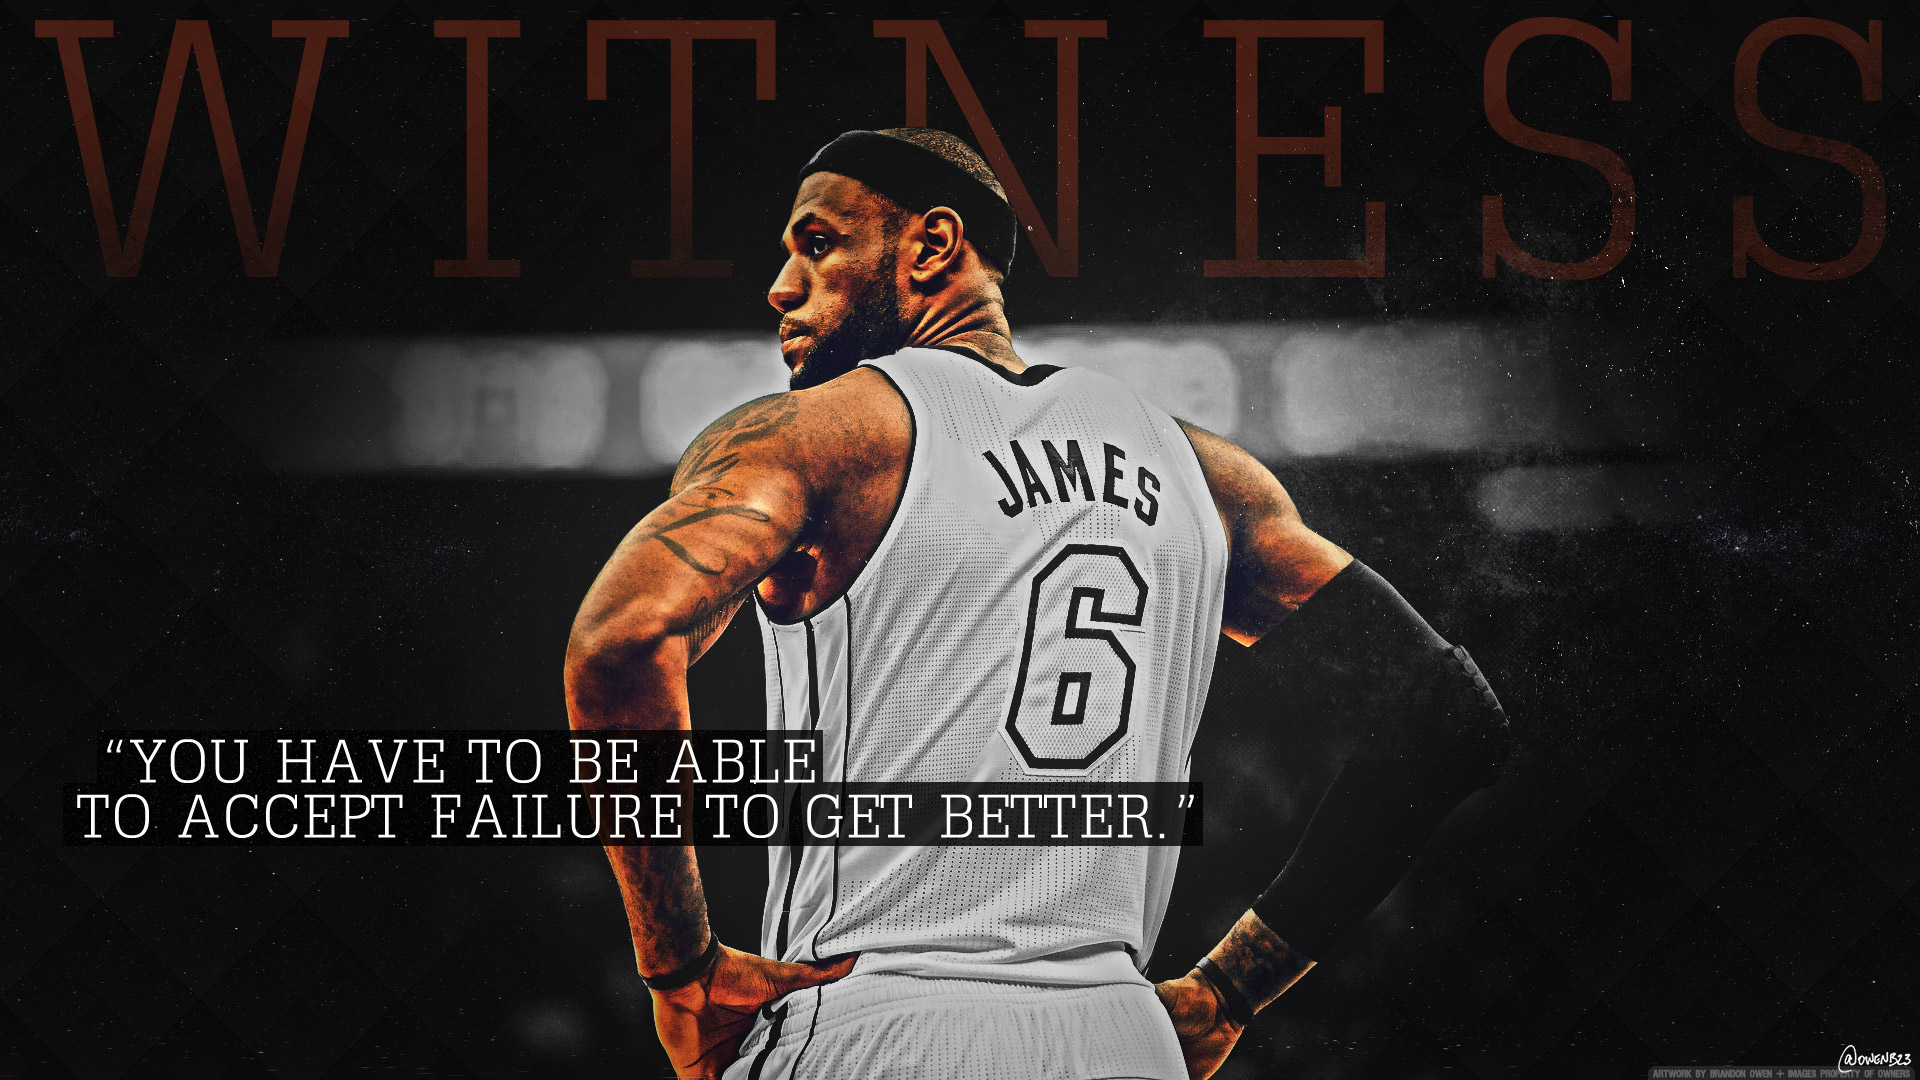 Nba quote #3